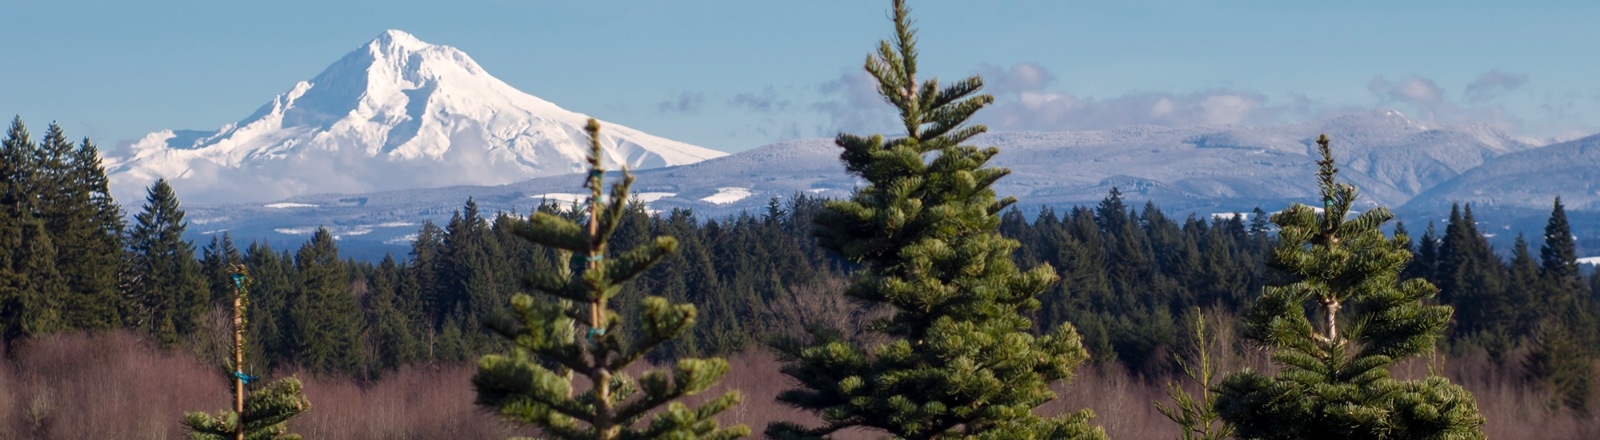 11,245 ft. Mt. Hood is seen against the blue sky from one of Oregon Mt. Hood Territory's many U-cut Christmas tree farms